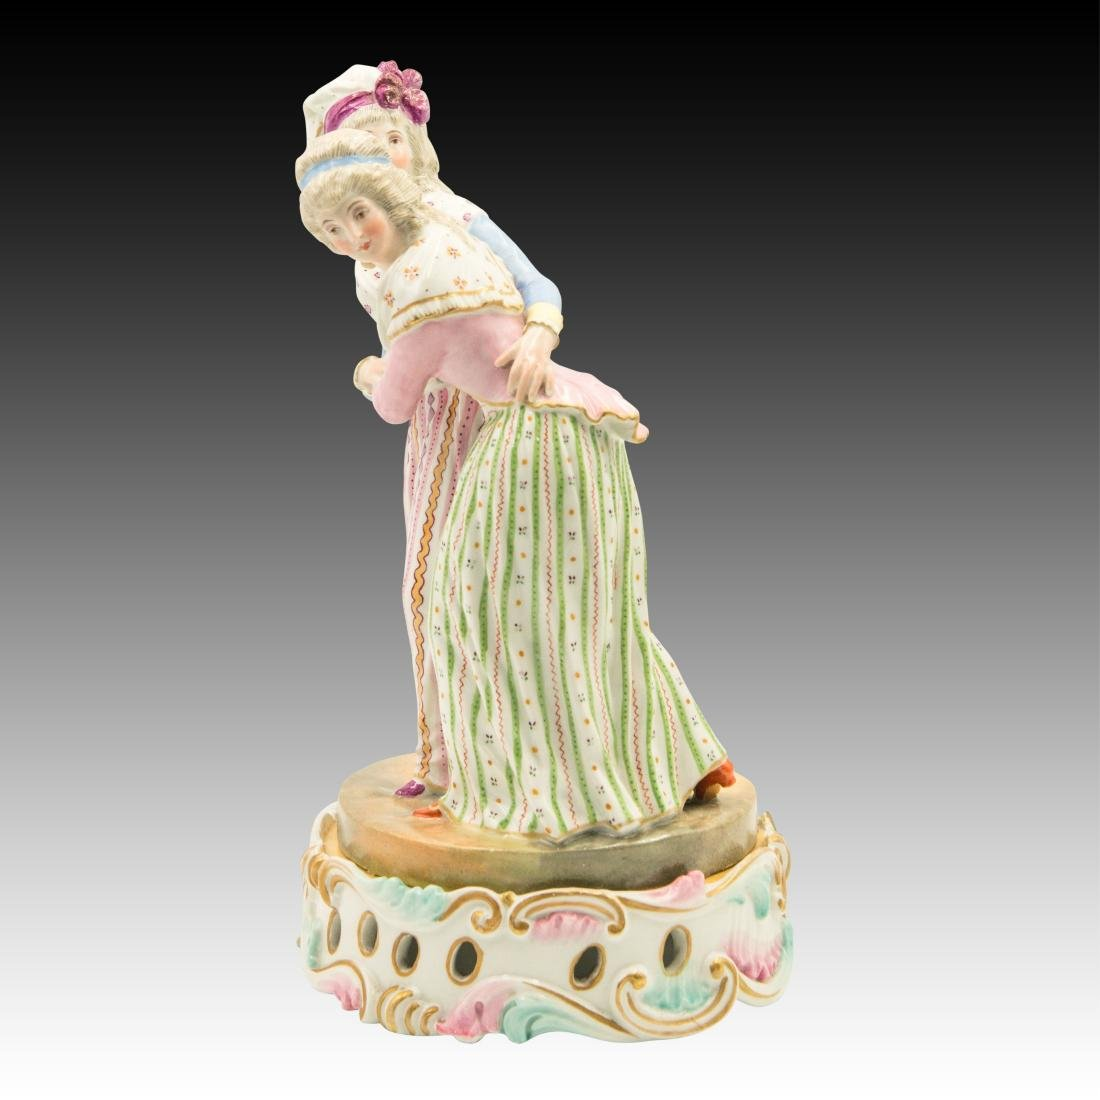 Meissen Two Ladies with Colorful Attire Figurine - 2